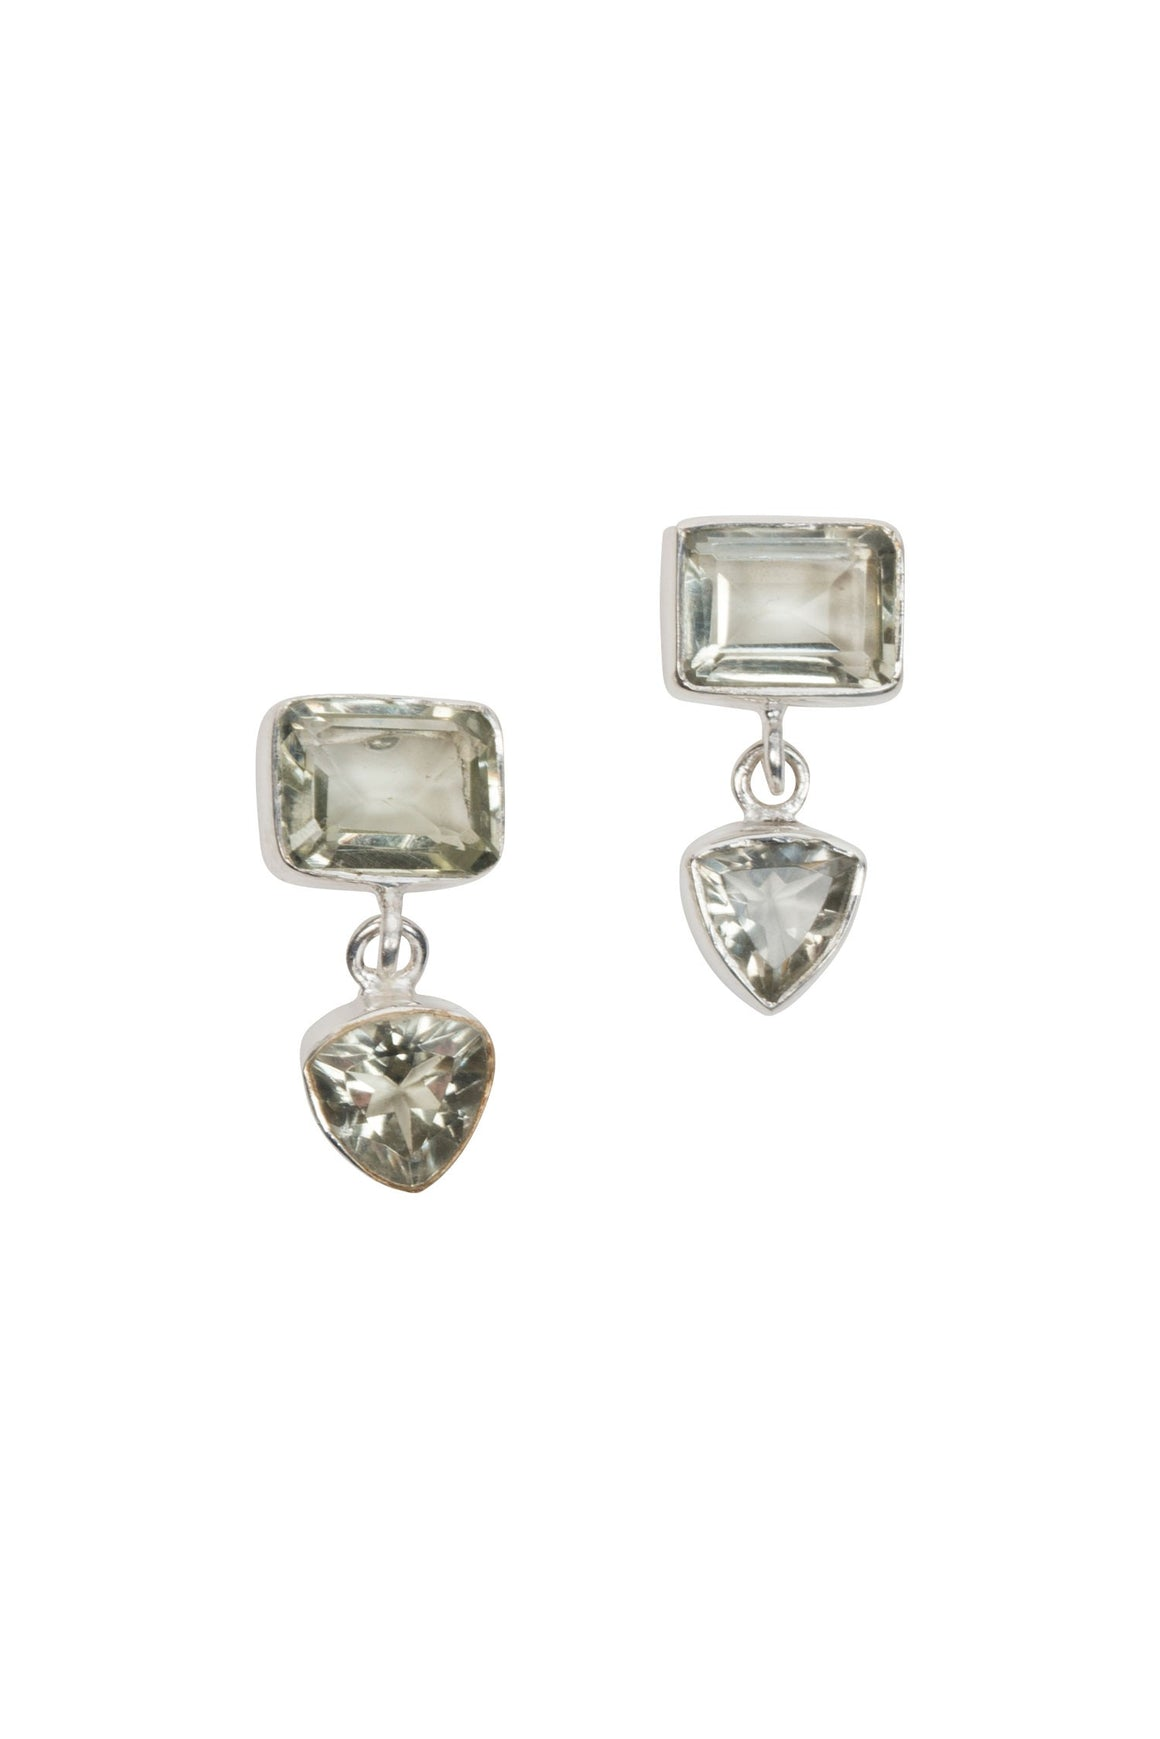 Green Amethyst Post Earrings